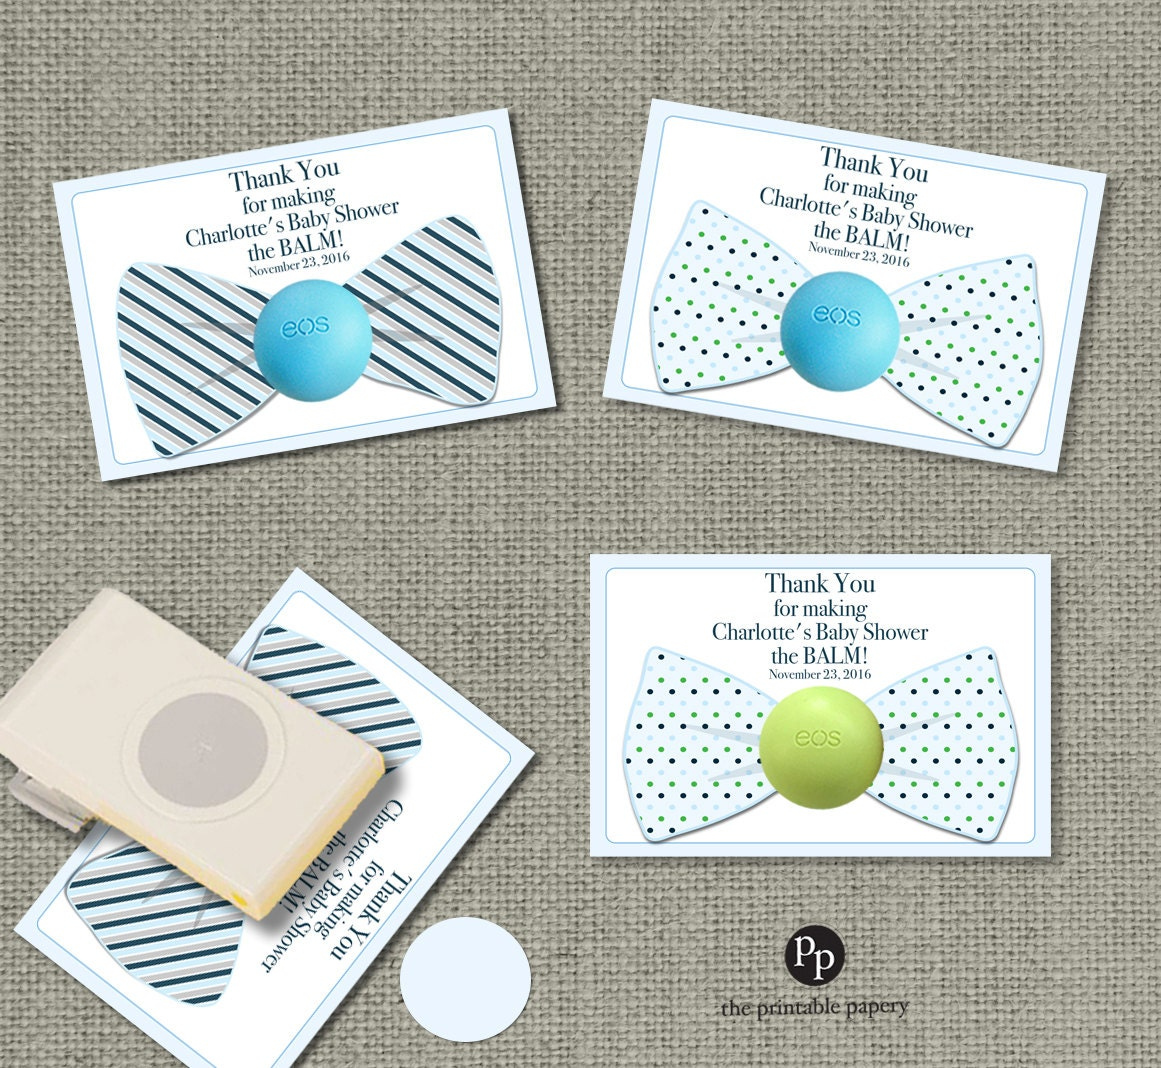 Bow Tie Baby Shower Gift Tags For EOS Lip Balm Gifts Thank